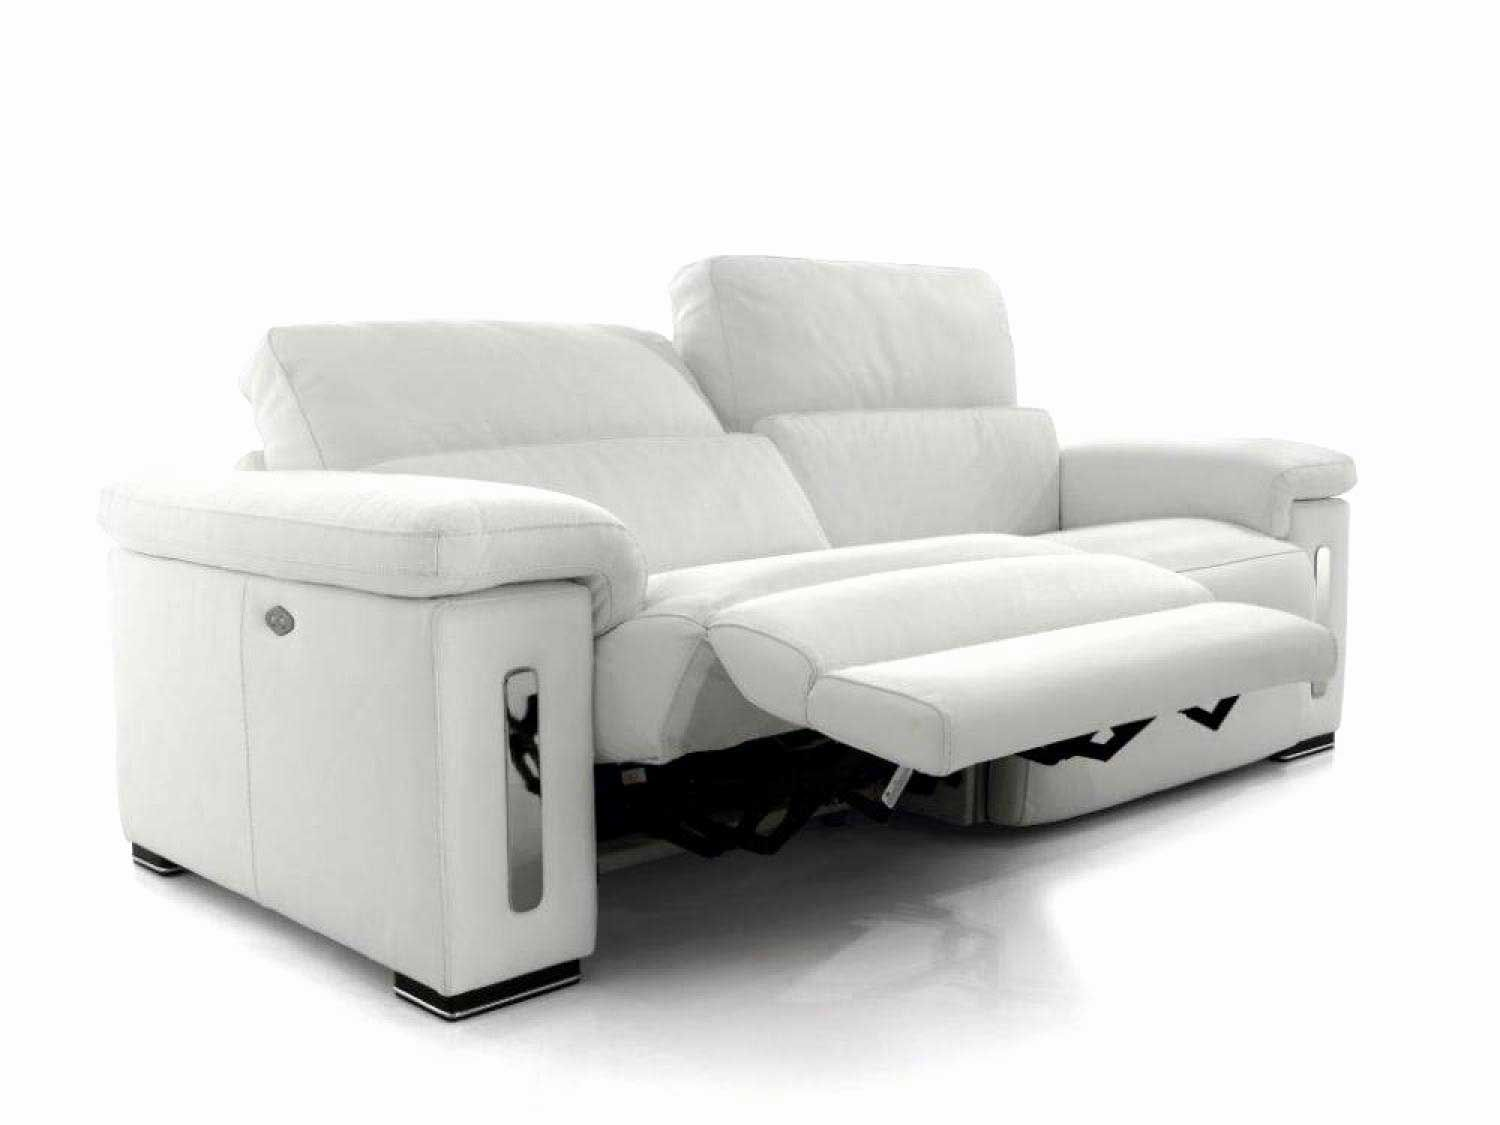 Canape Relax Electrique Alinea Beau Fauteuil Relaxation Electrique Conforama Beau S Canape Re Lounge Chair Furniture Recliner Chair